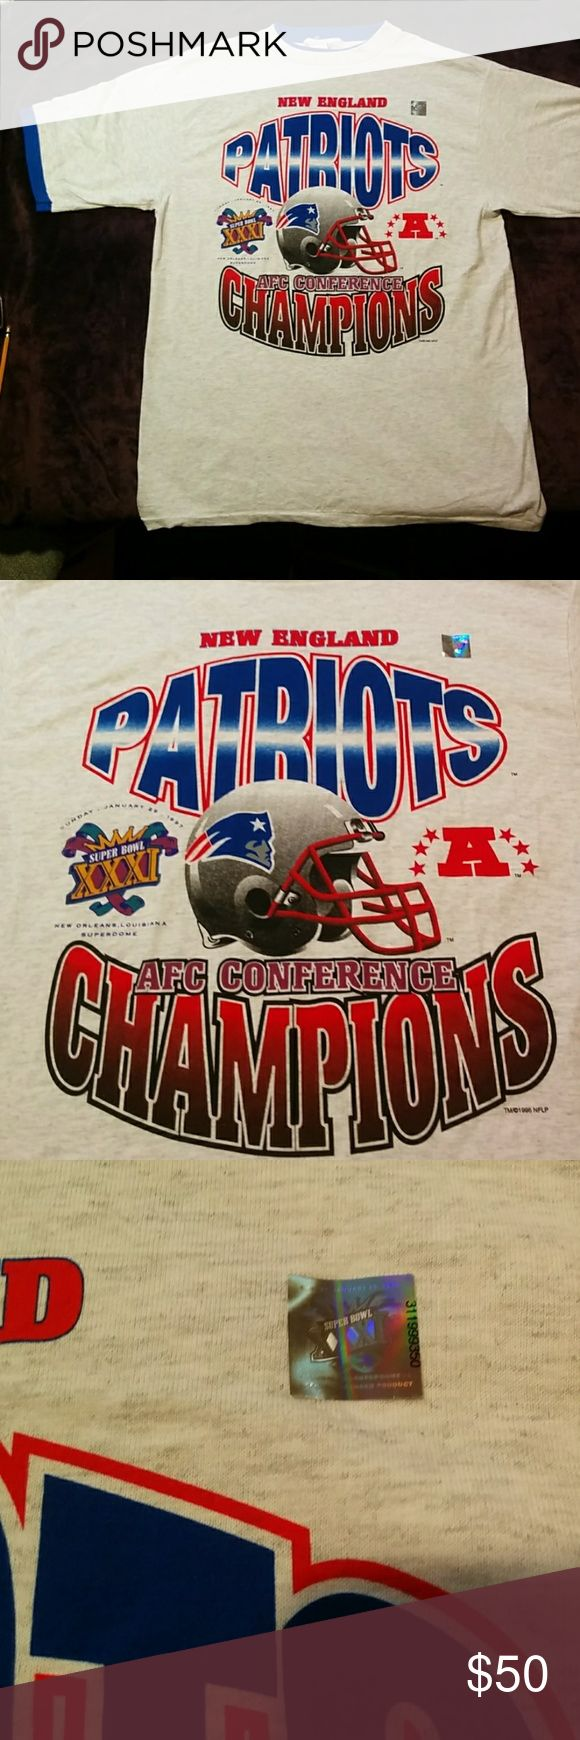 Vintage 1997 New England Patriots Superbowl Shirt VERY VERY RARE New Old Stock Never Worn (Still has stickers on it) NEW ENGLAND PATRIOTS 1997 Superbowl XXXIX Layered T Shirt . Shirt is Grey with 2 tone layered blue underneath. Size is Men's XL TRUE FIT True-Fan Shirts